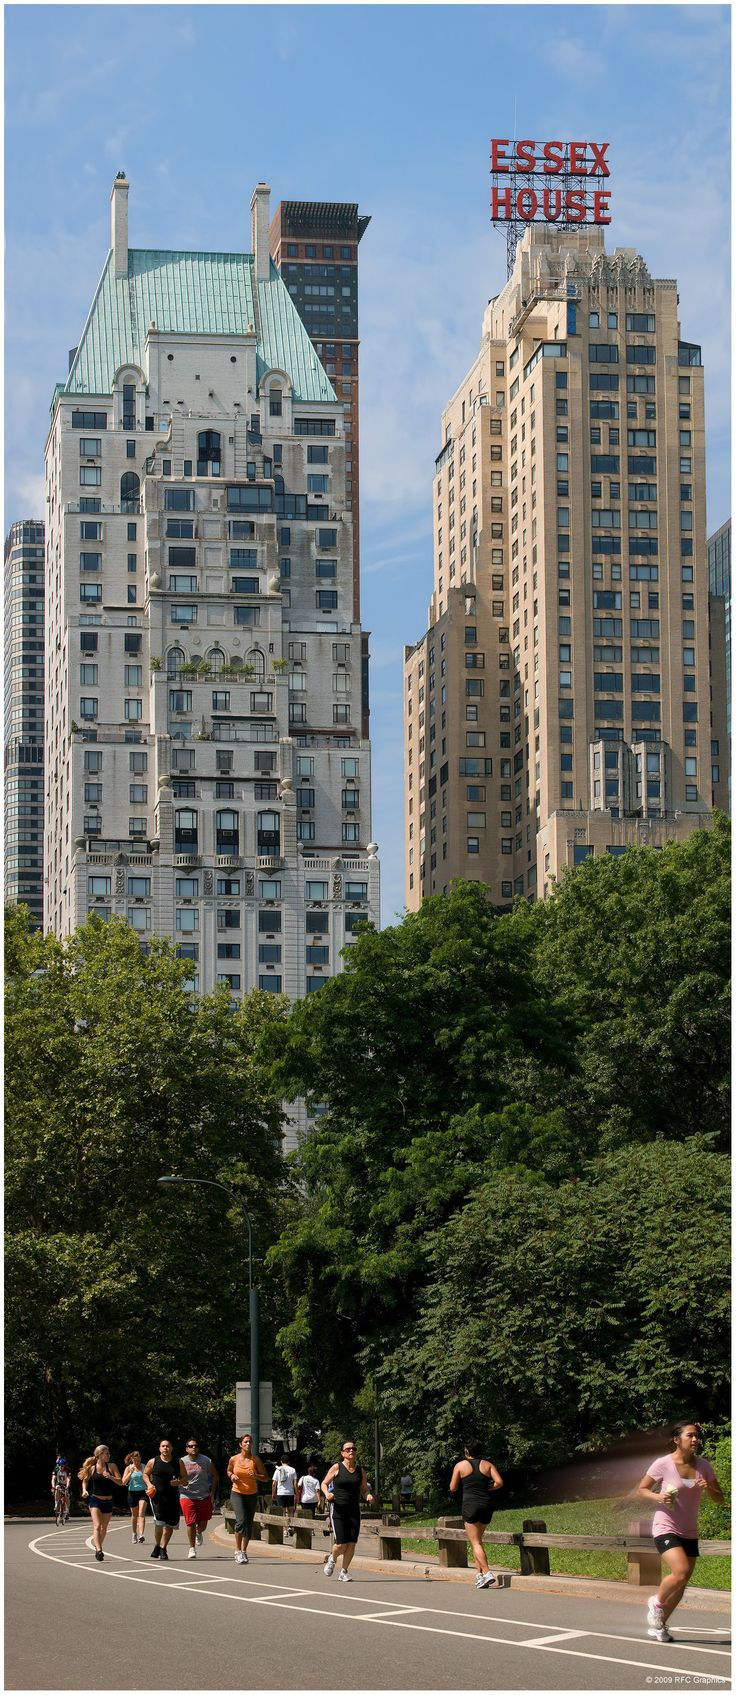 A view of Hampshire House, a co-op apartment building, and Essex House, a hotel, from Central Park. Both in Central Park South. NEW YORK CITY.